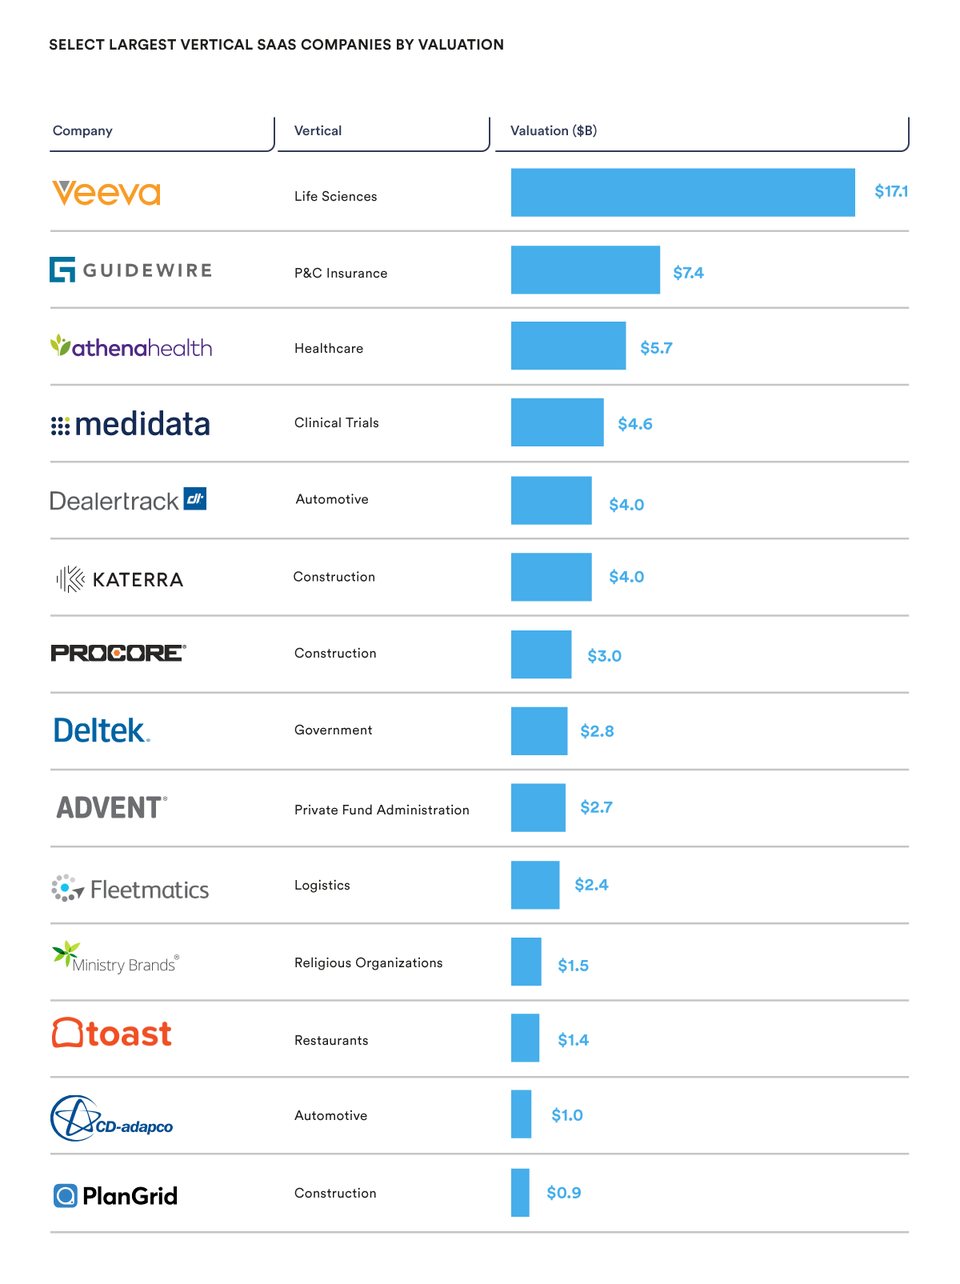 Image result for select largest vertical saas